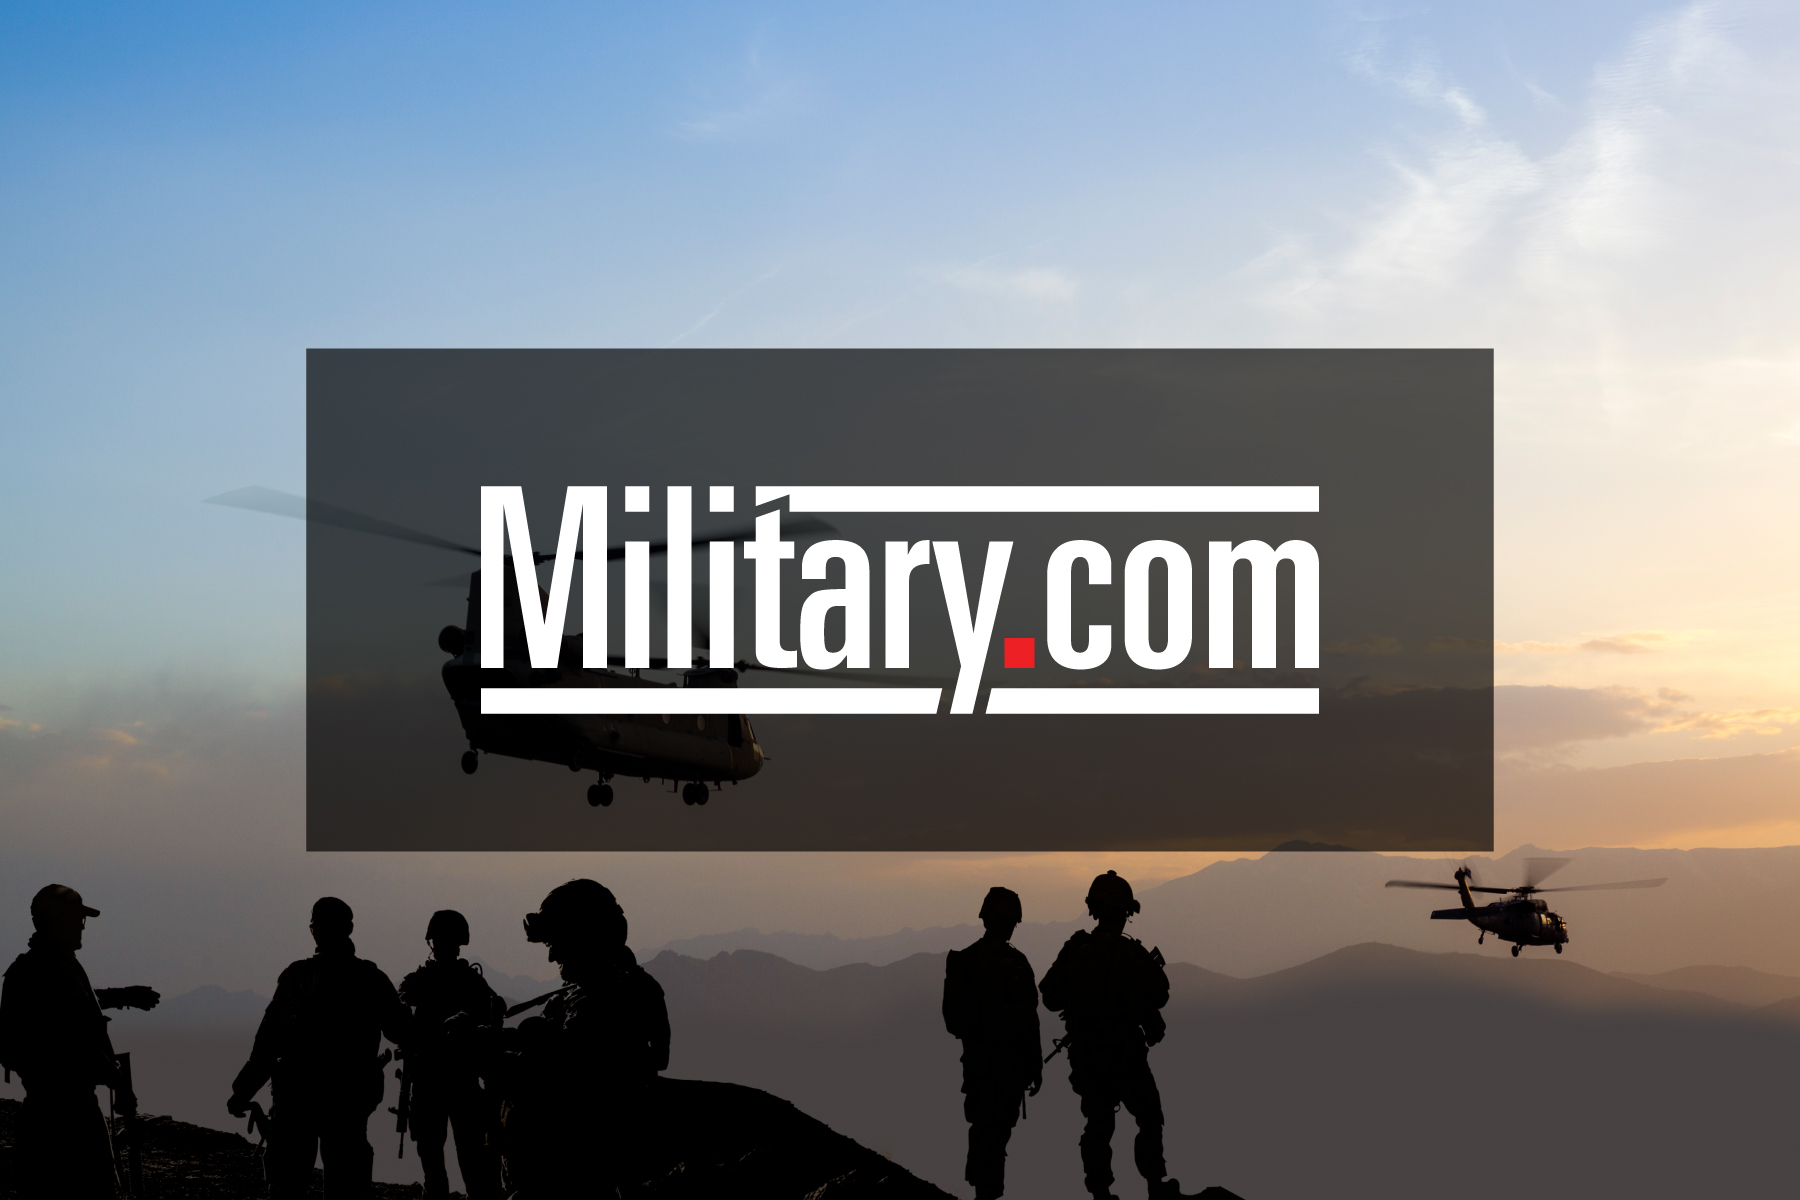 Former Defense Secretary Robert Gates, shown here in a file photo, slammed lawmakers on Sept. 17 who he claims are willing to cripple the U.S. economically and strategically in the world to hold onto their political seats.